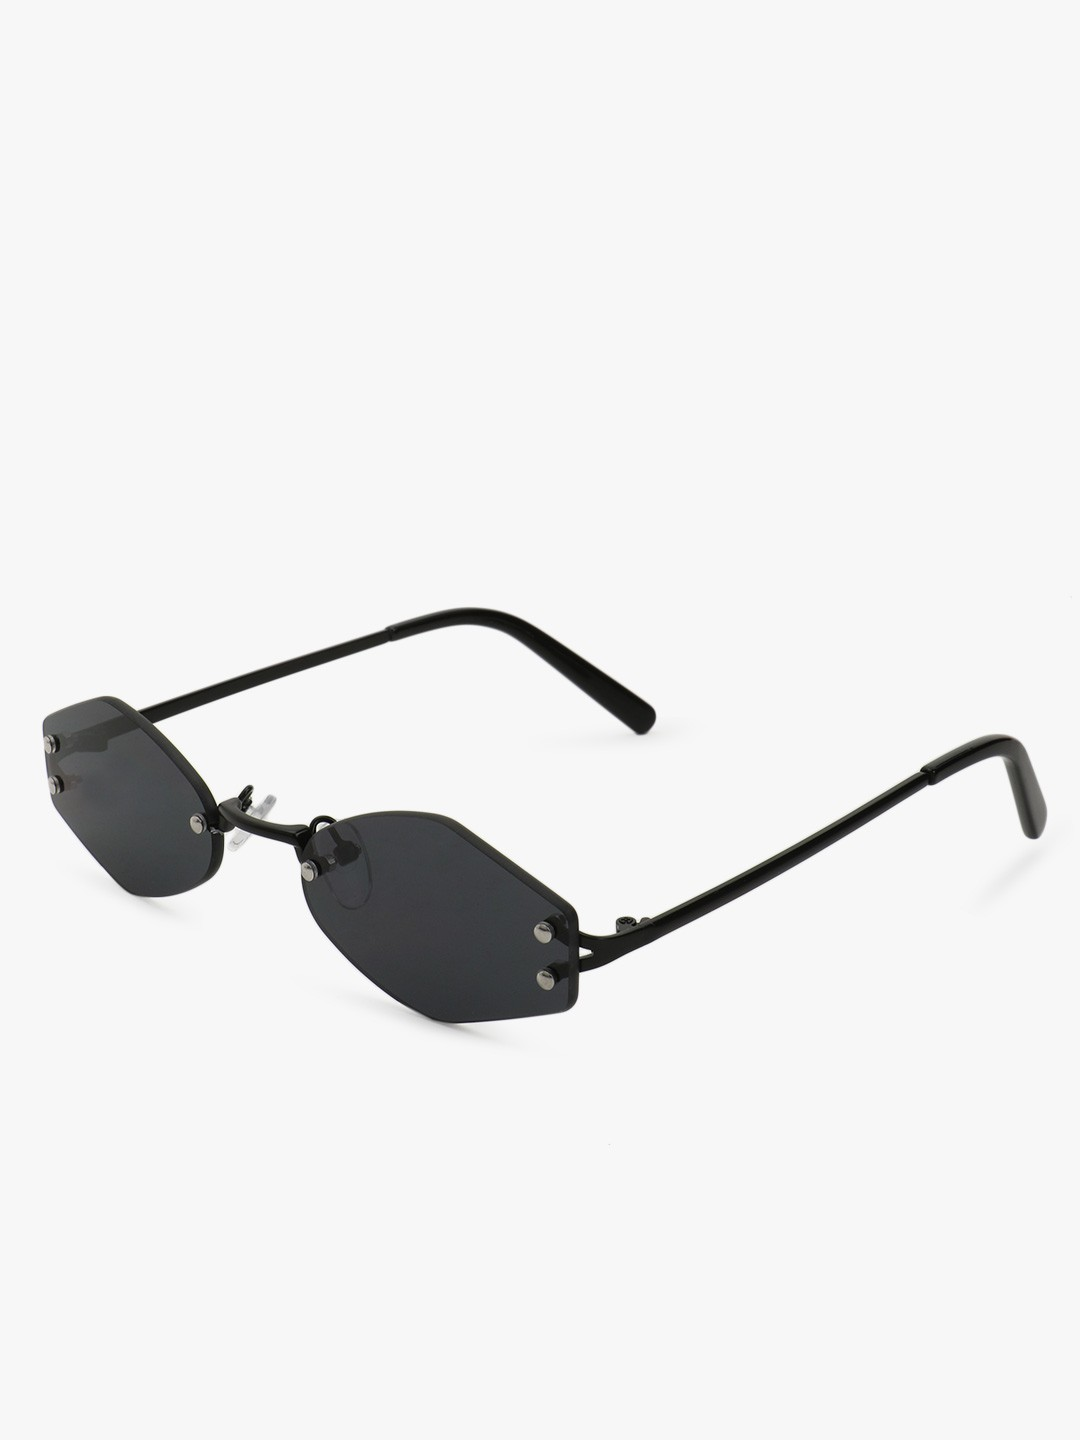 Sneak-a-Peek Black Hexagonal Micro Sunnies 1